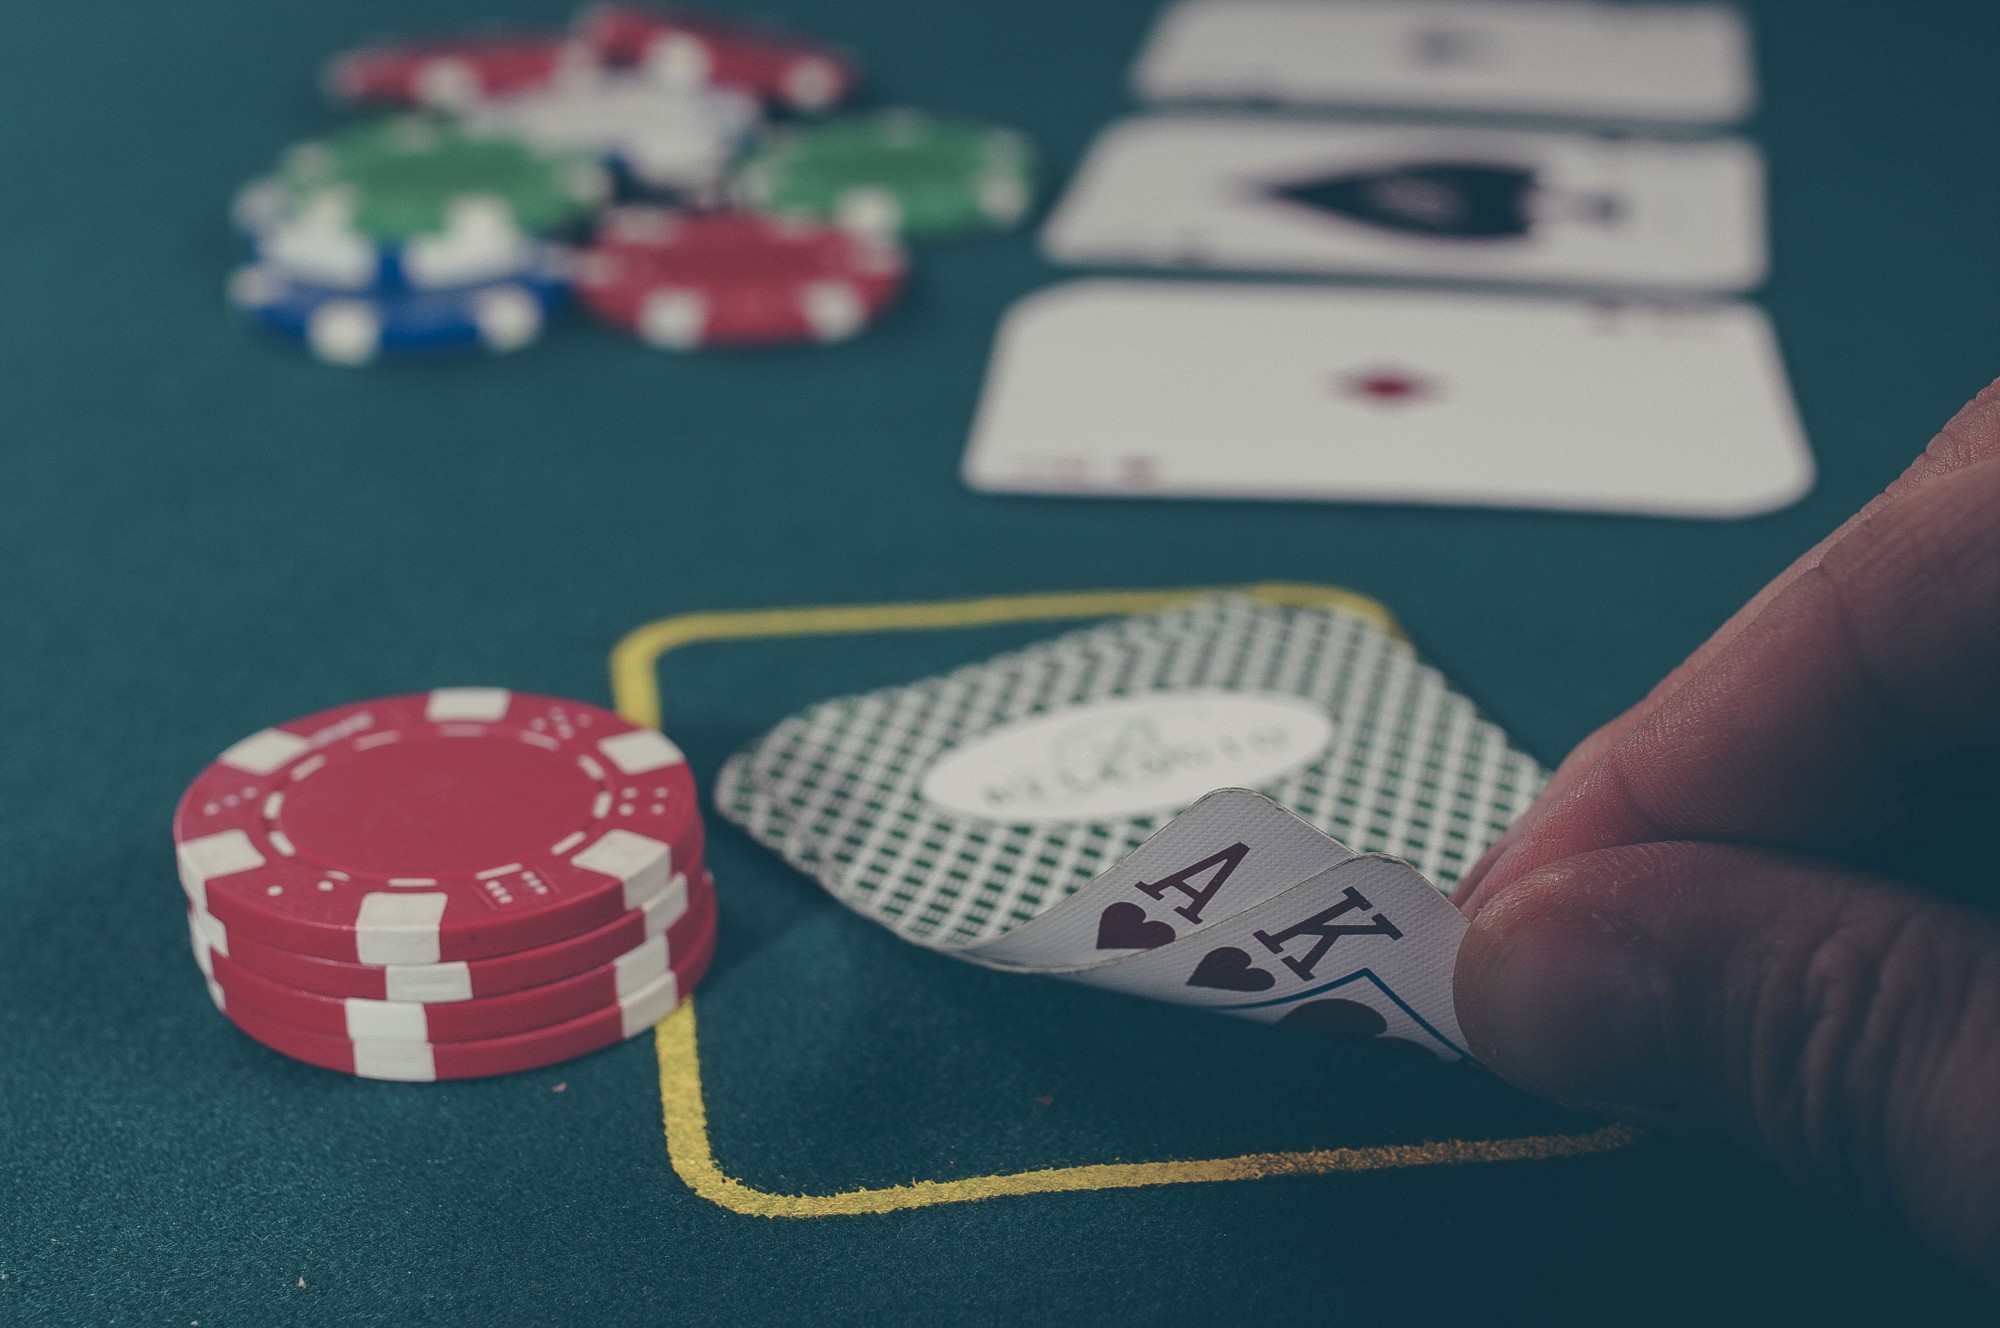 Javascript promises explained by gambling at a casino solutioingenieria Choice Image